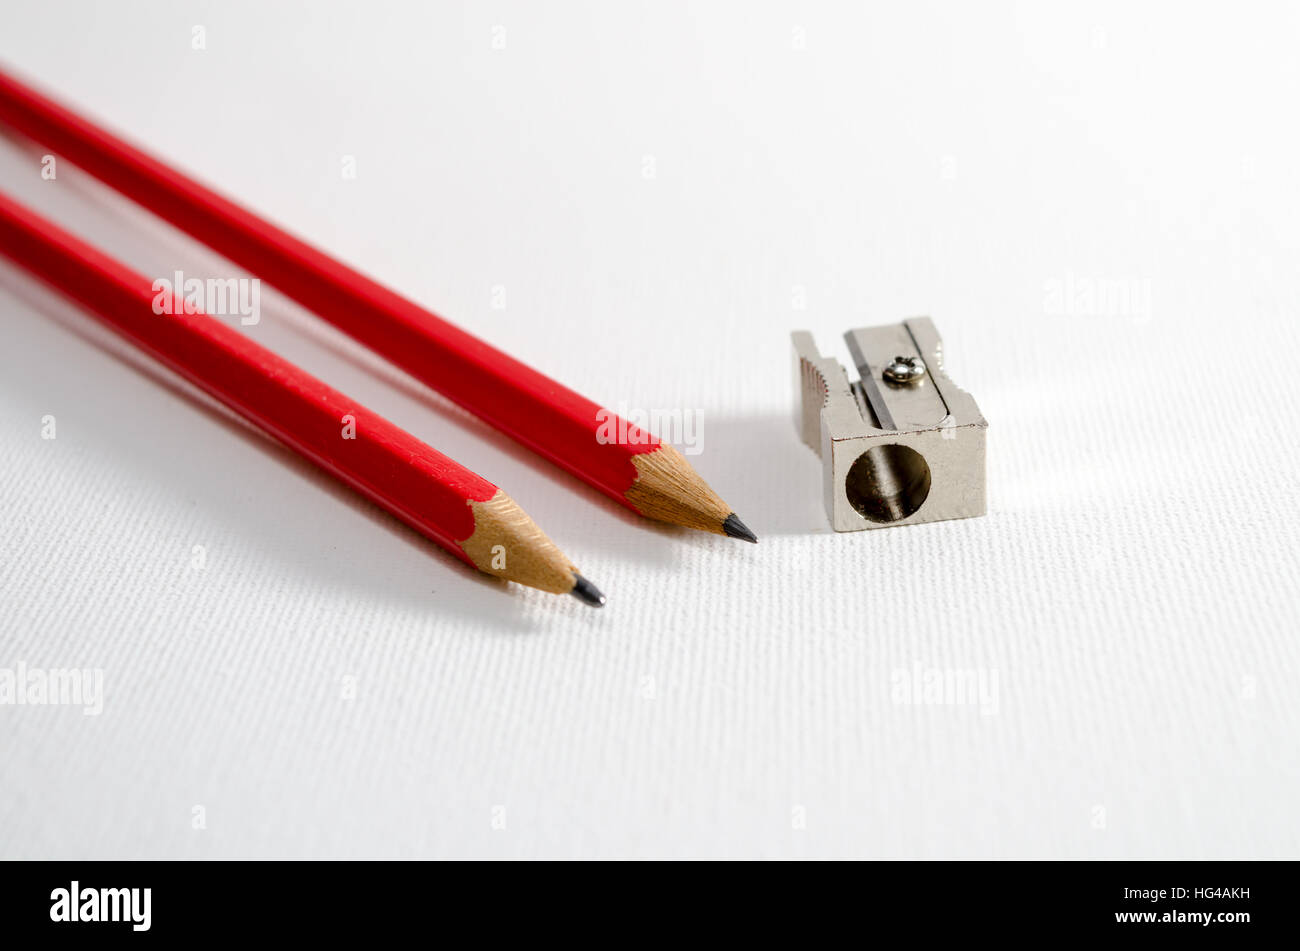 A Studio Photograph of some Pencils and a Pencil Sharpener - Stock Image